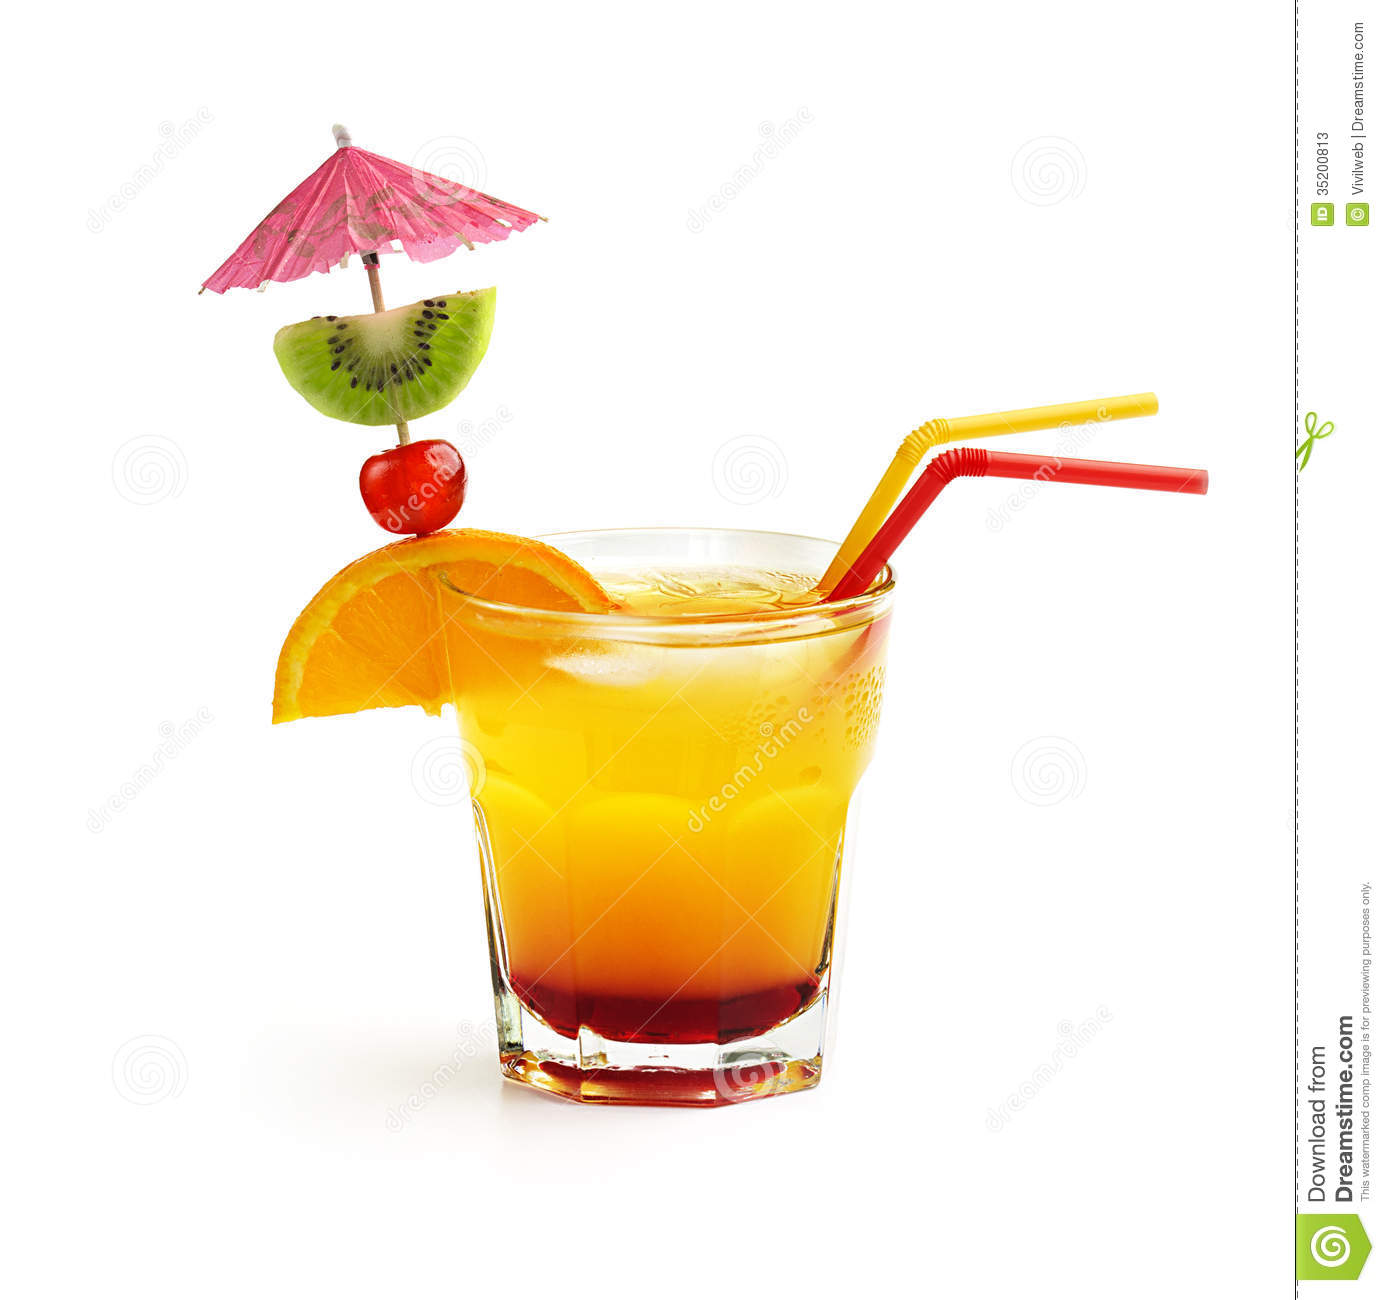 Tequila sunrise cocktail stock image image of cherry - Cocktail dekoration ...